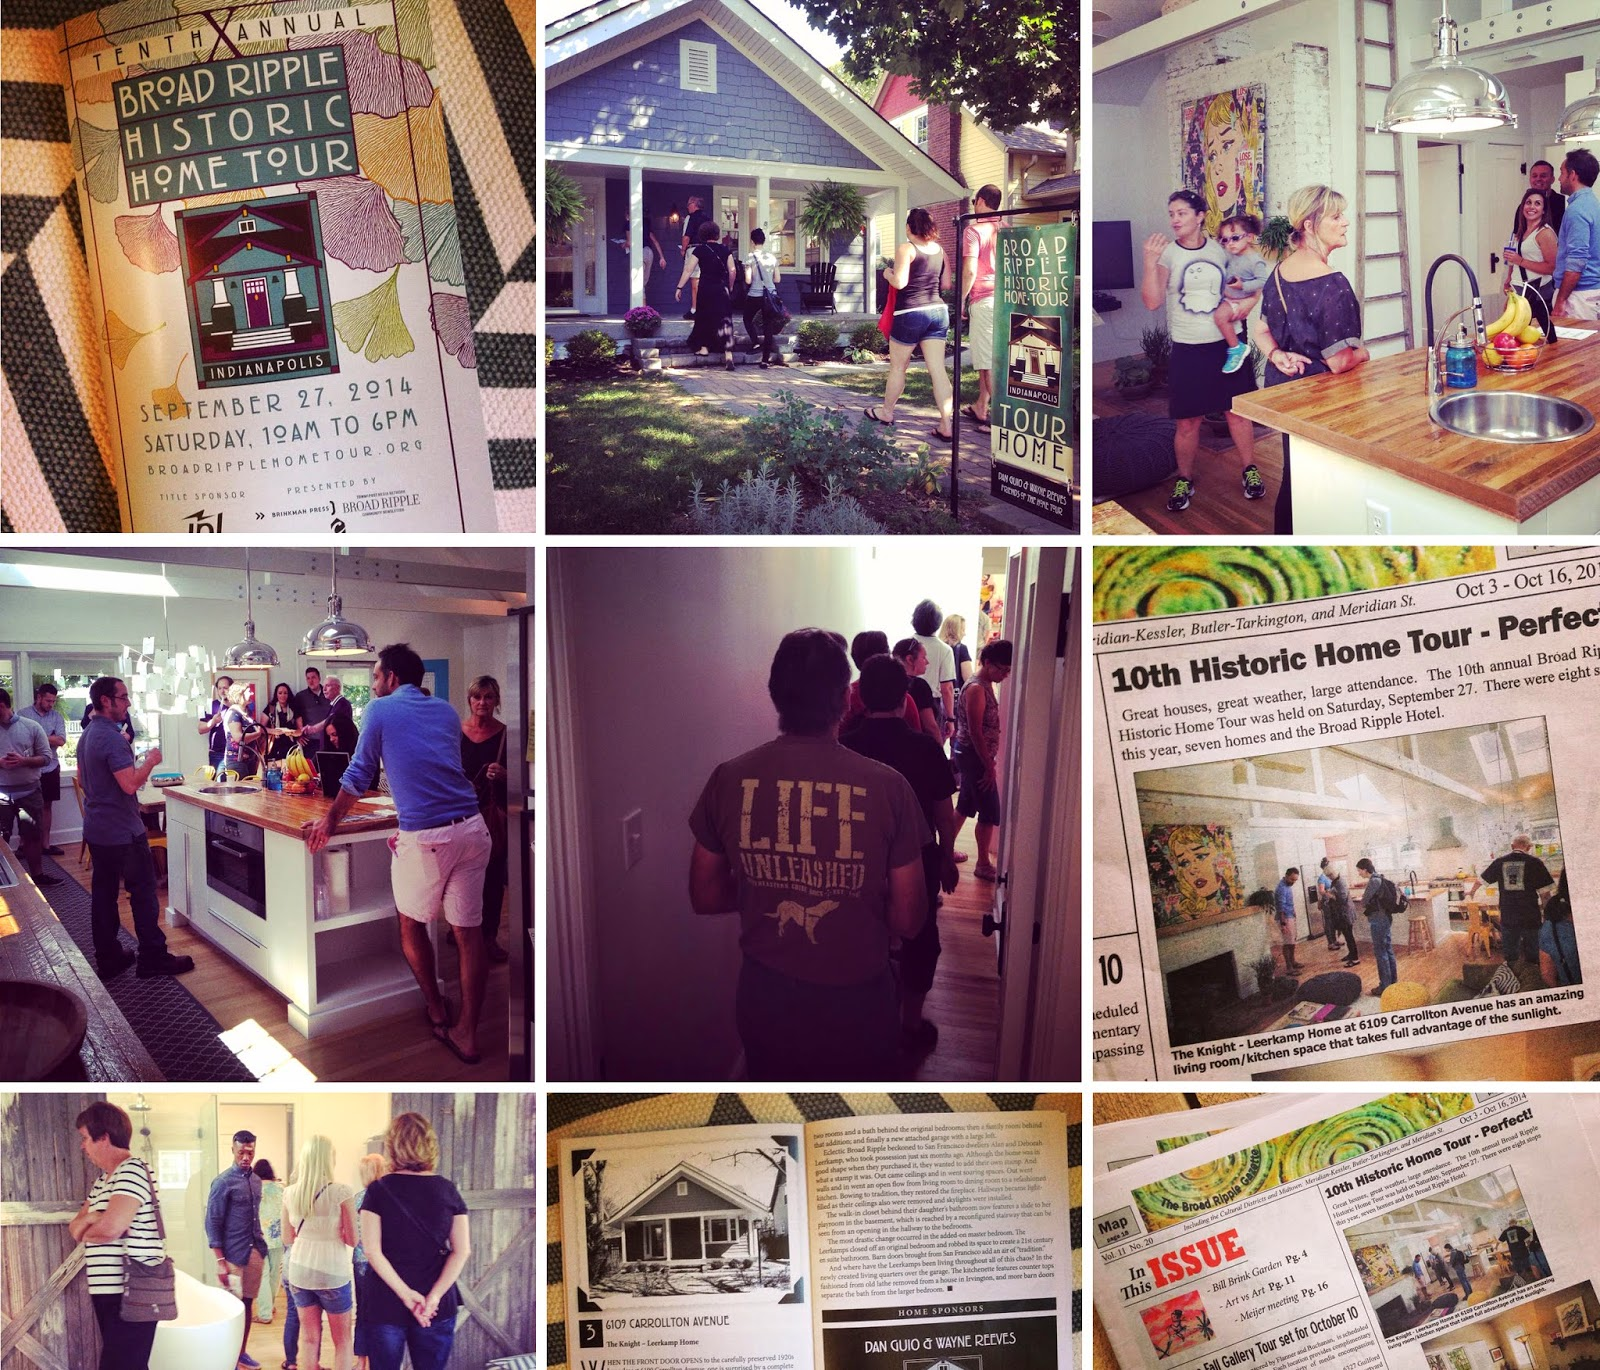 Broad Ripple Historic Home Tour.